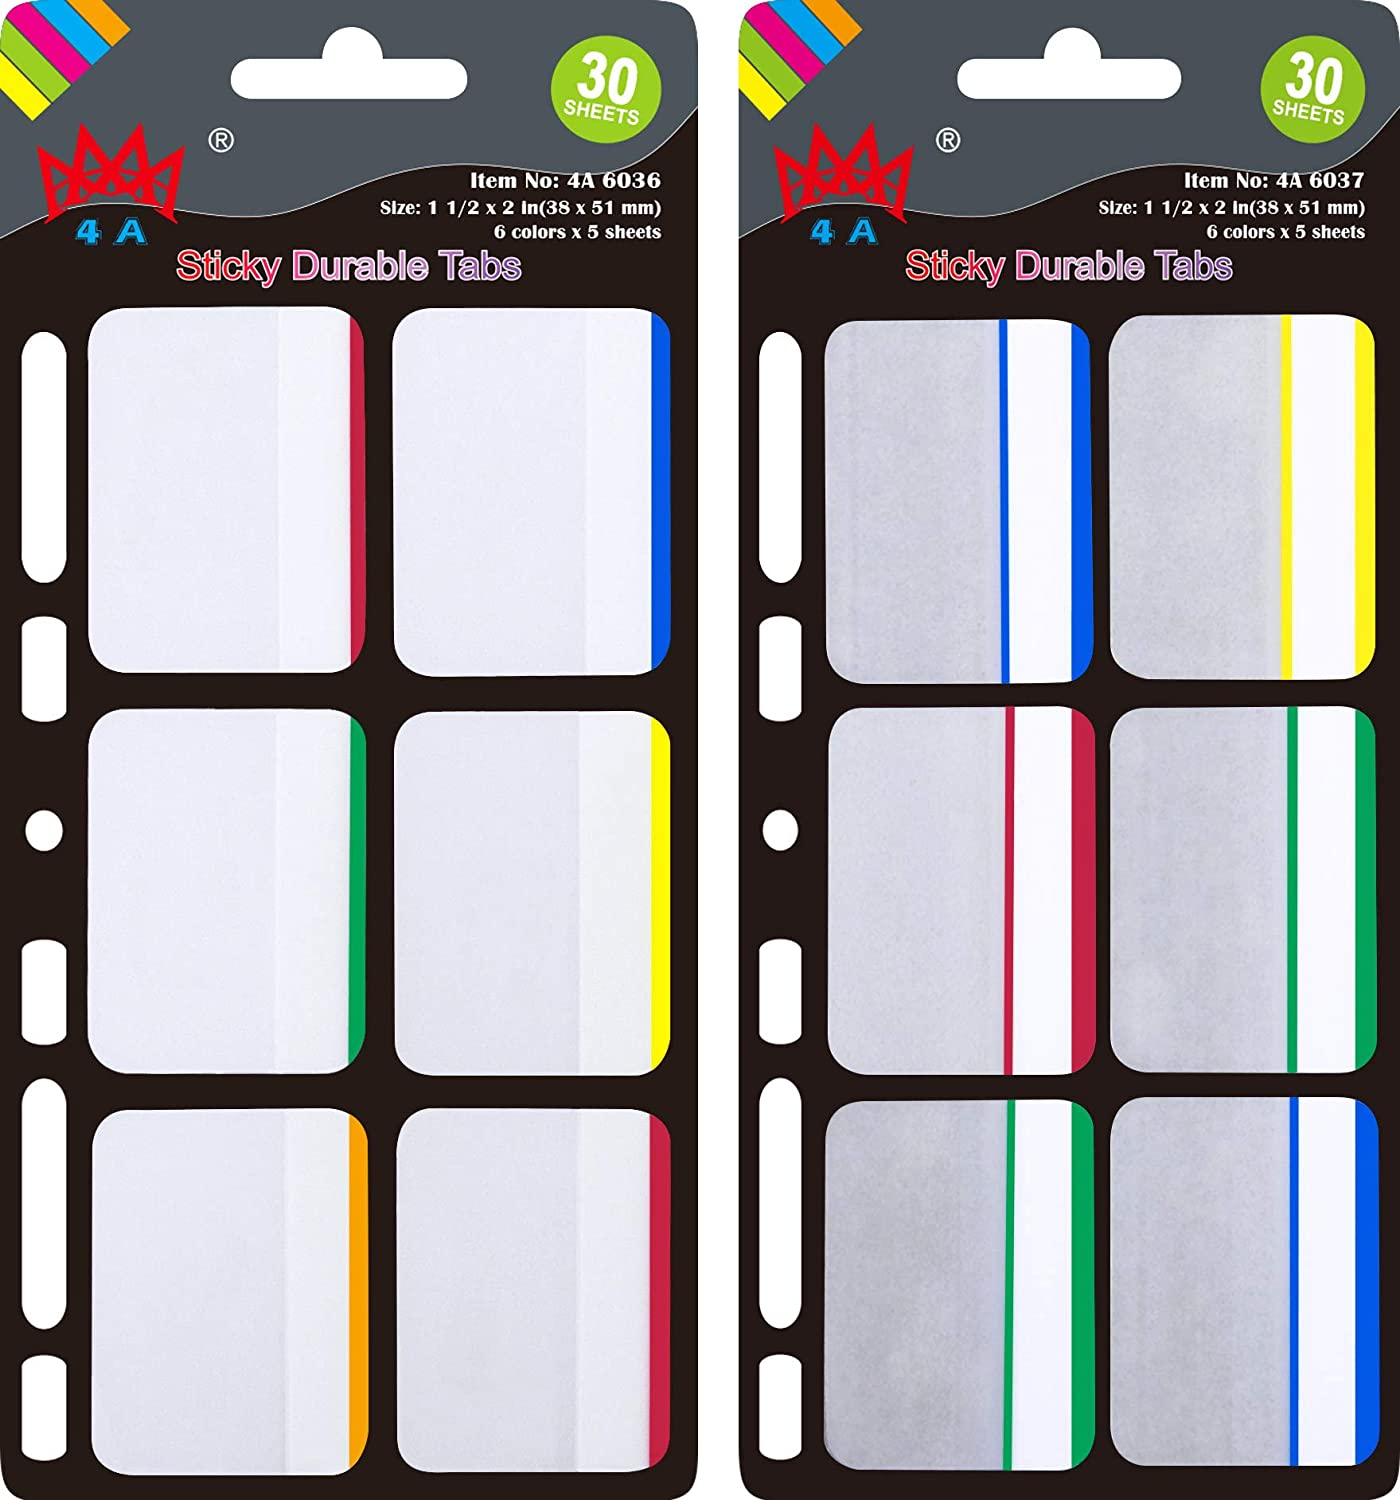 4A Durable File Tabs Divider Page Marker Milwaukee Mall Label Max 71% OFF Flags Index